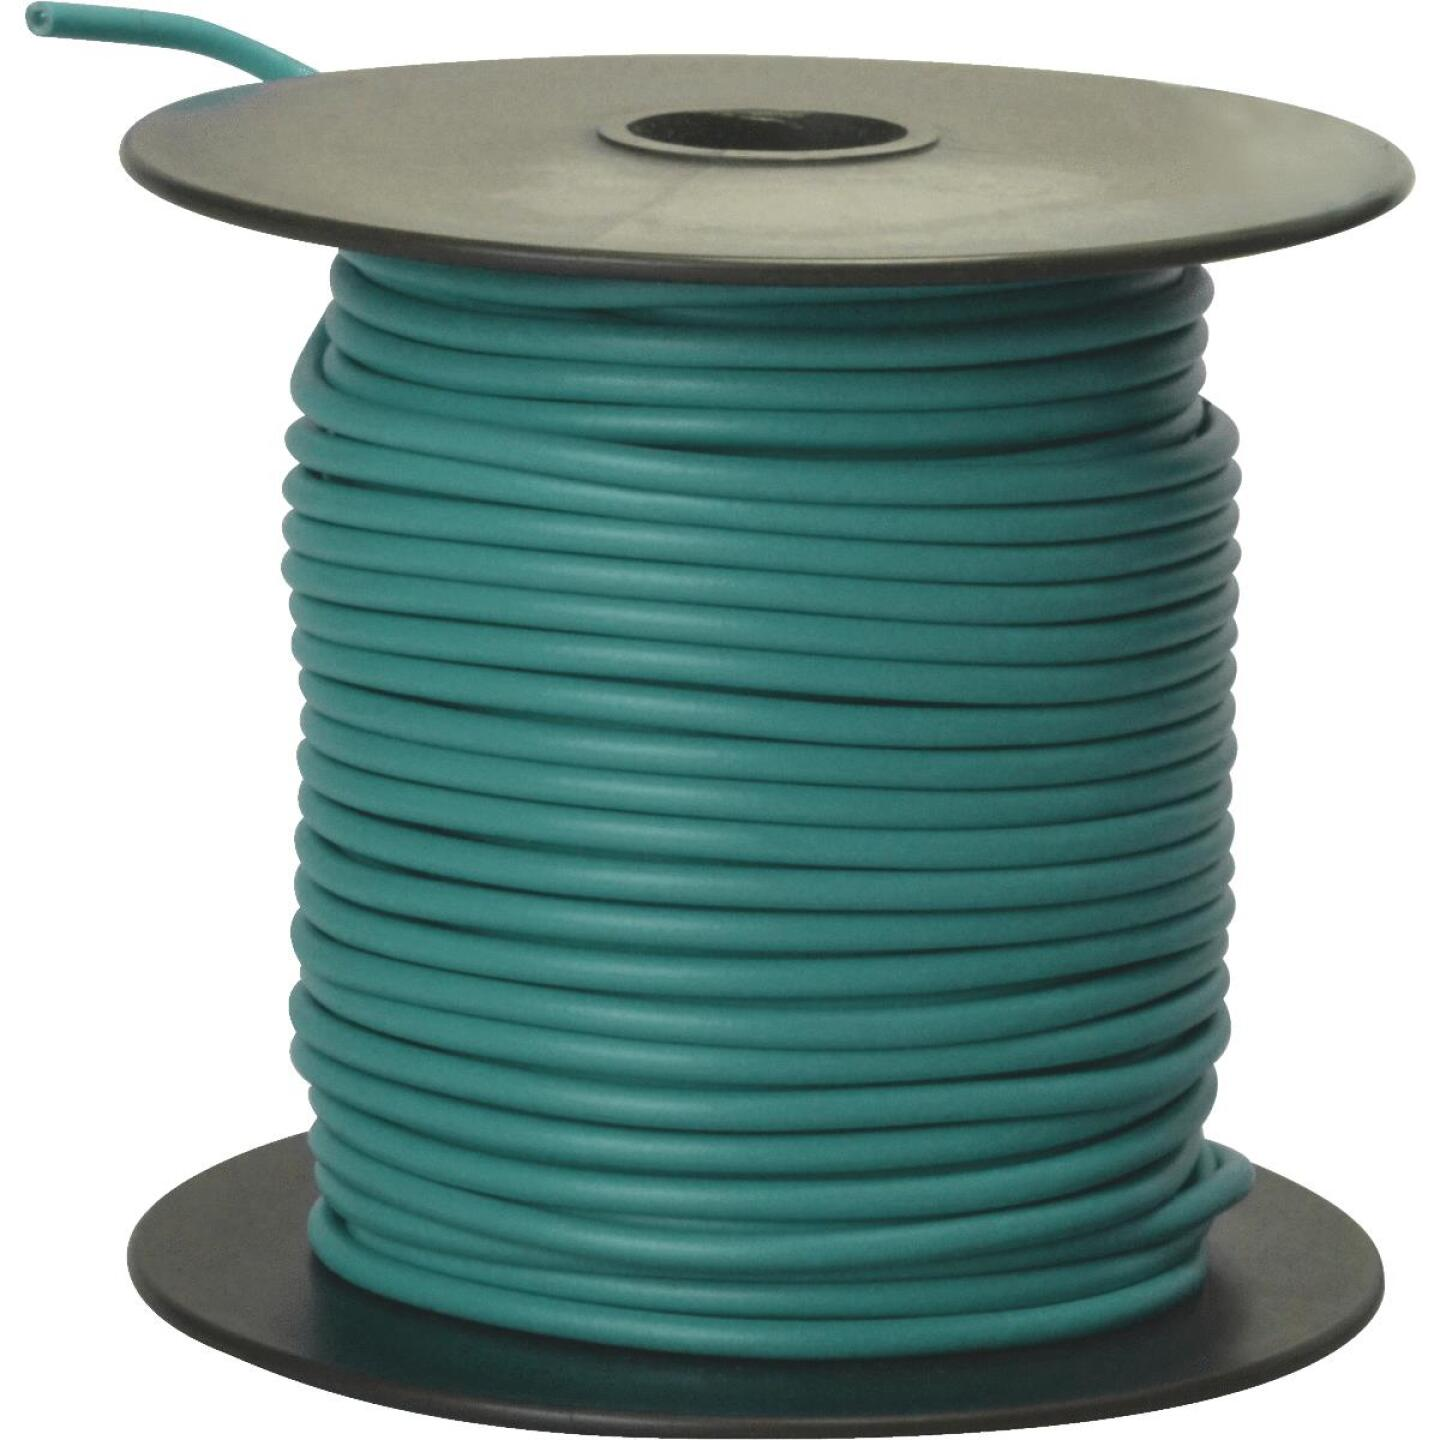 ROAD POWER 100 Ft. 16 Ga. PVC-Coated Primary Wire, Green Image 1